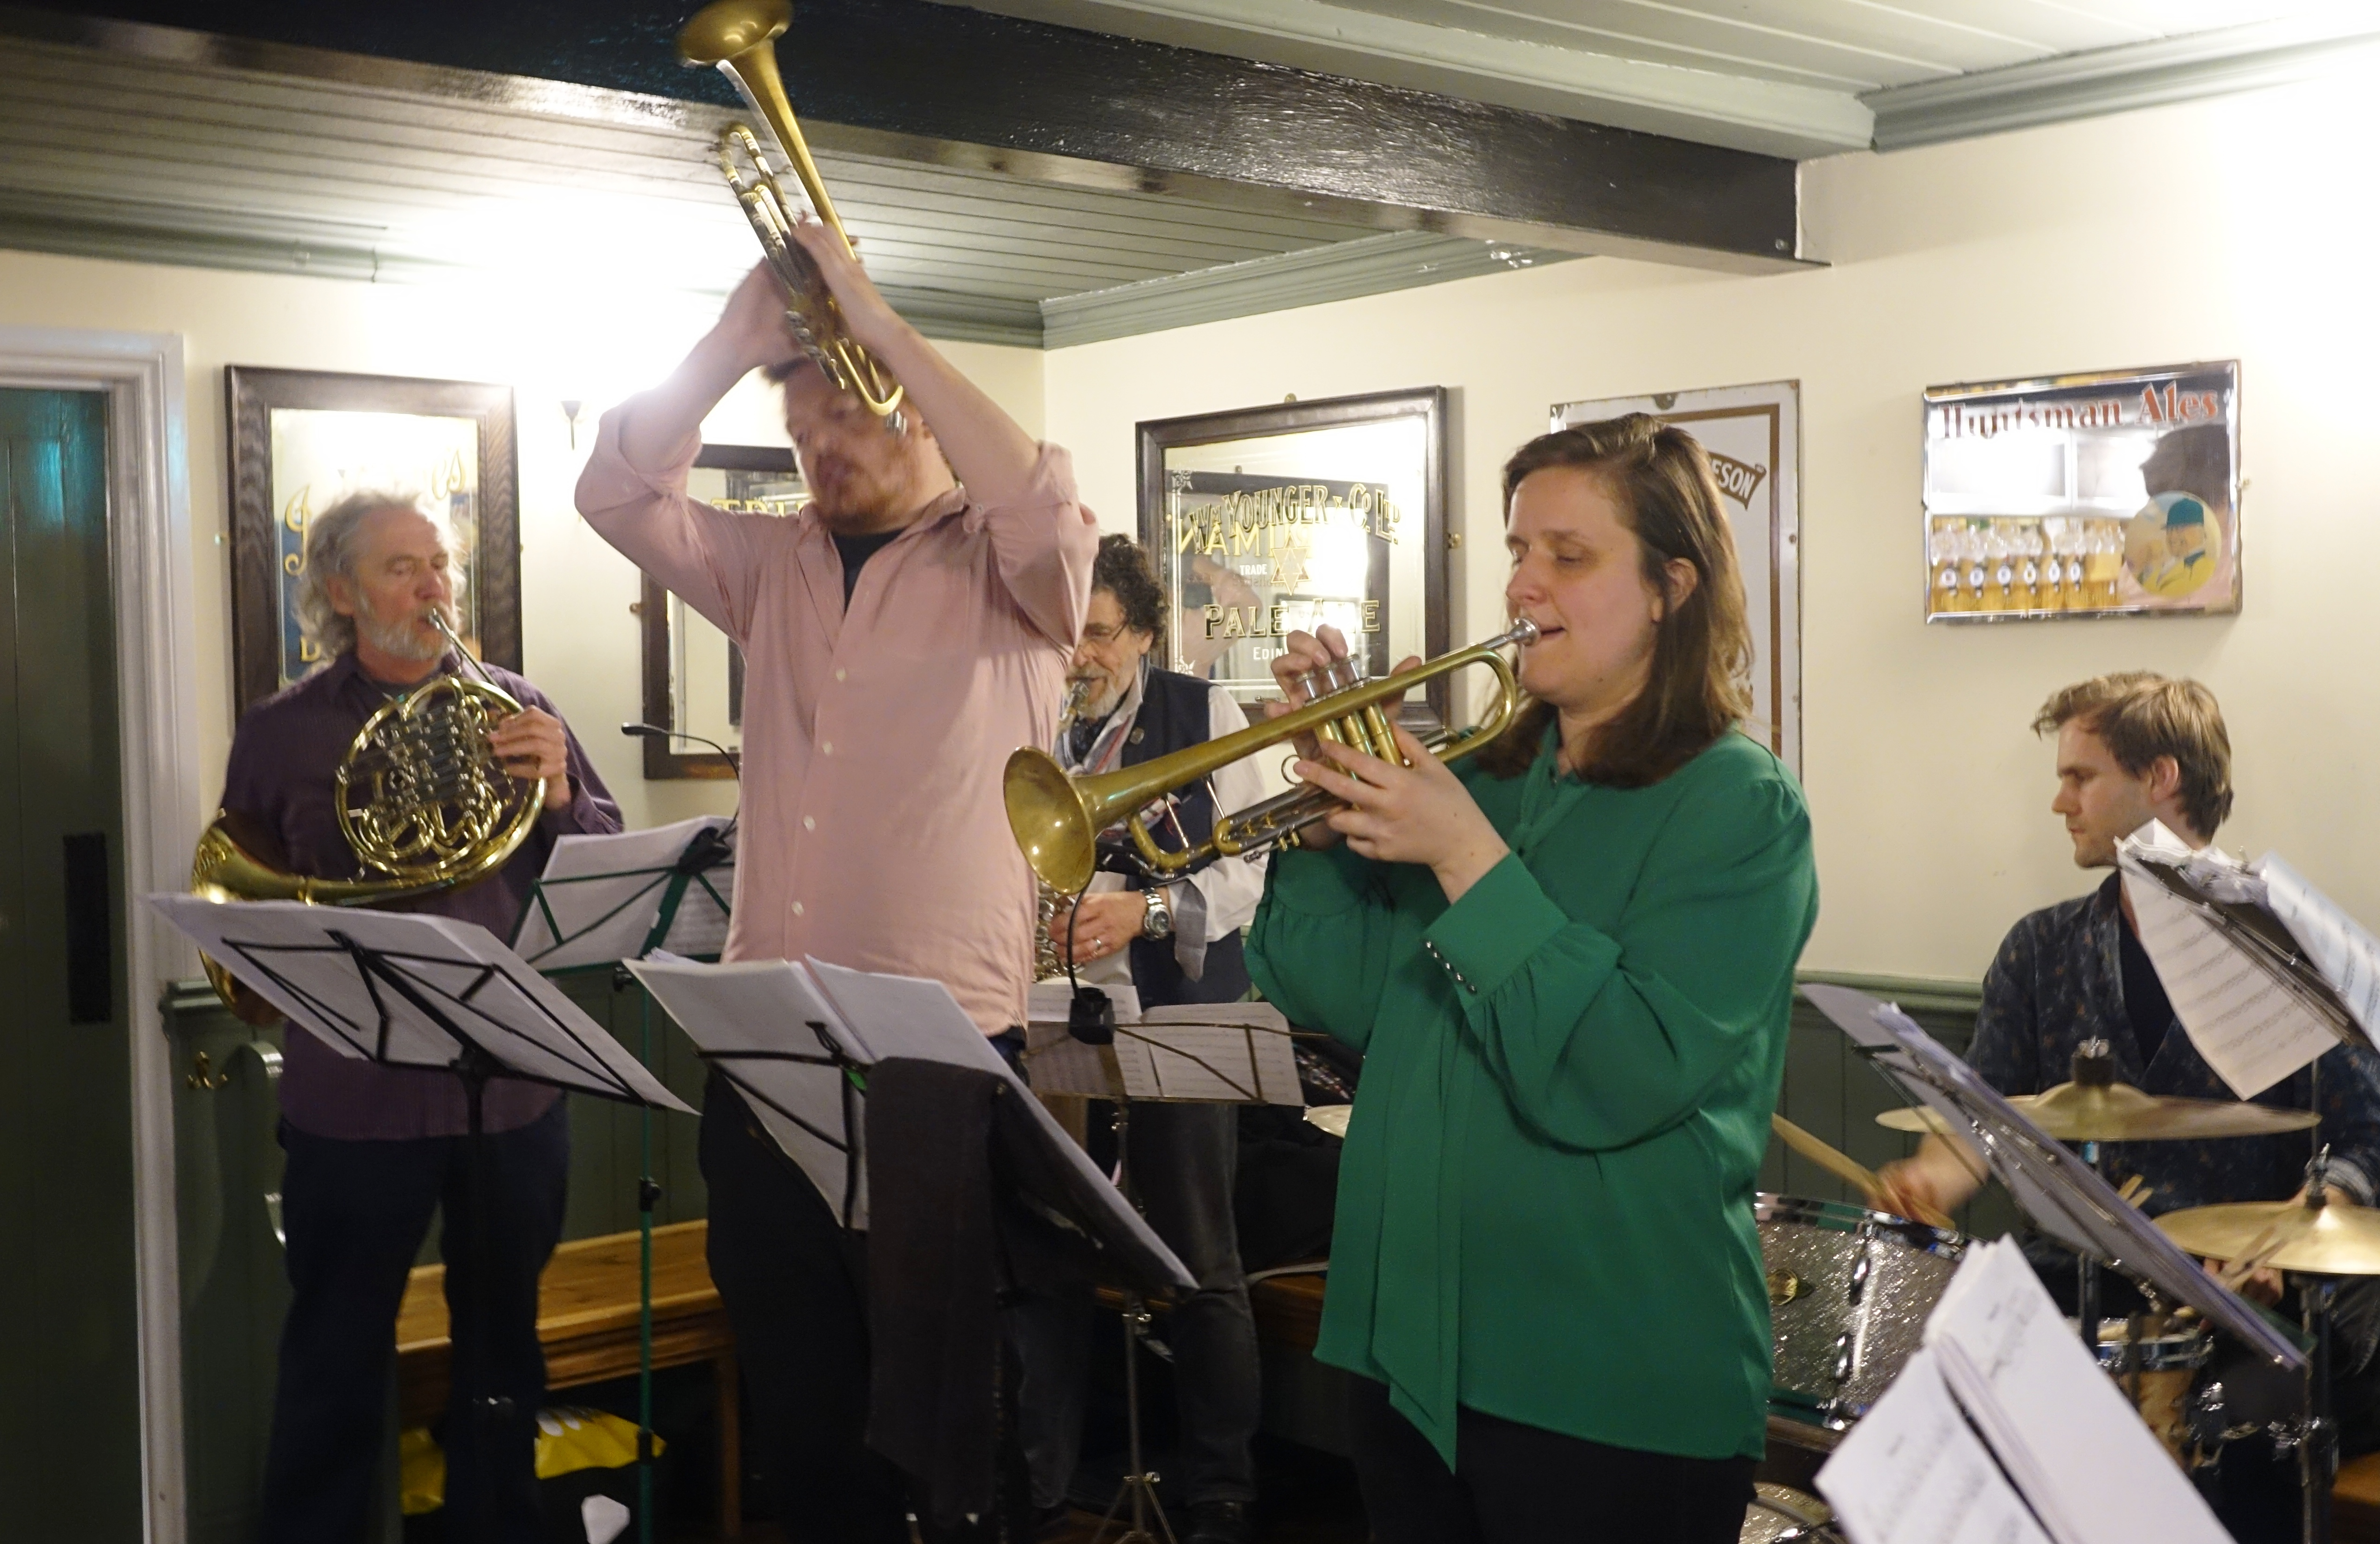 The Brass Monkeys at Fat Percy, Norwich in May 2019